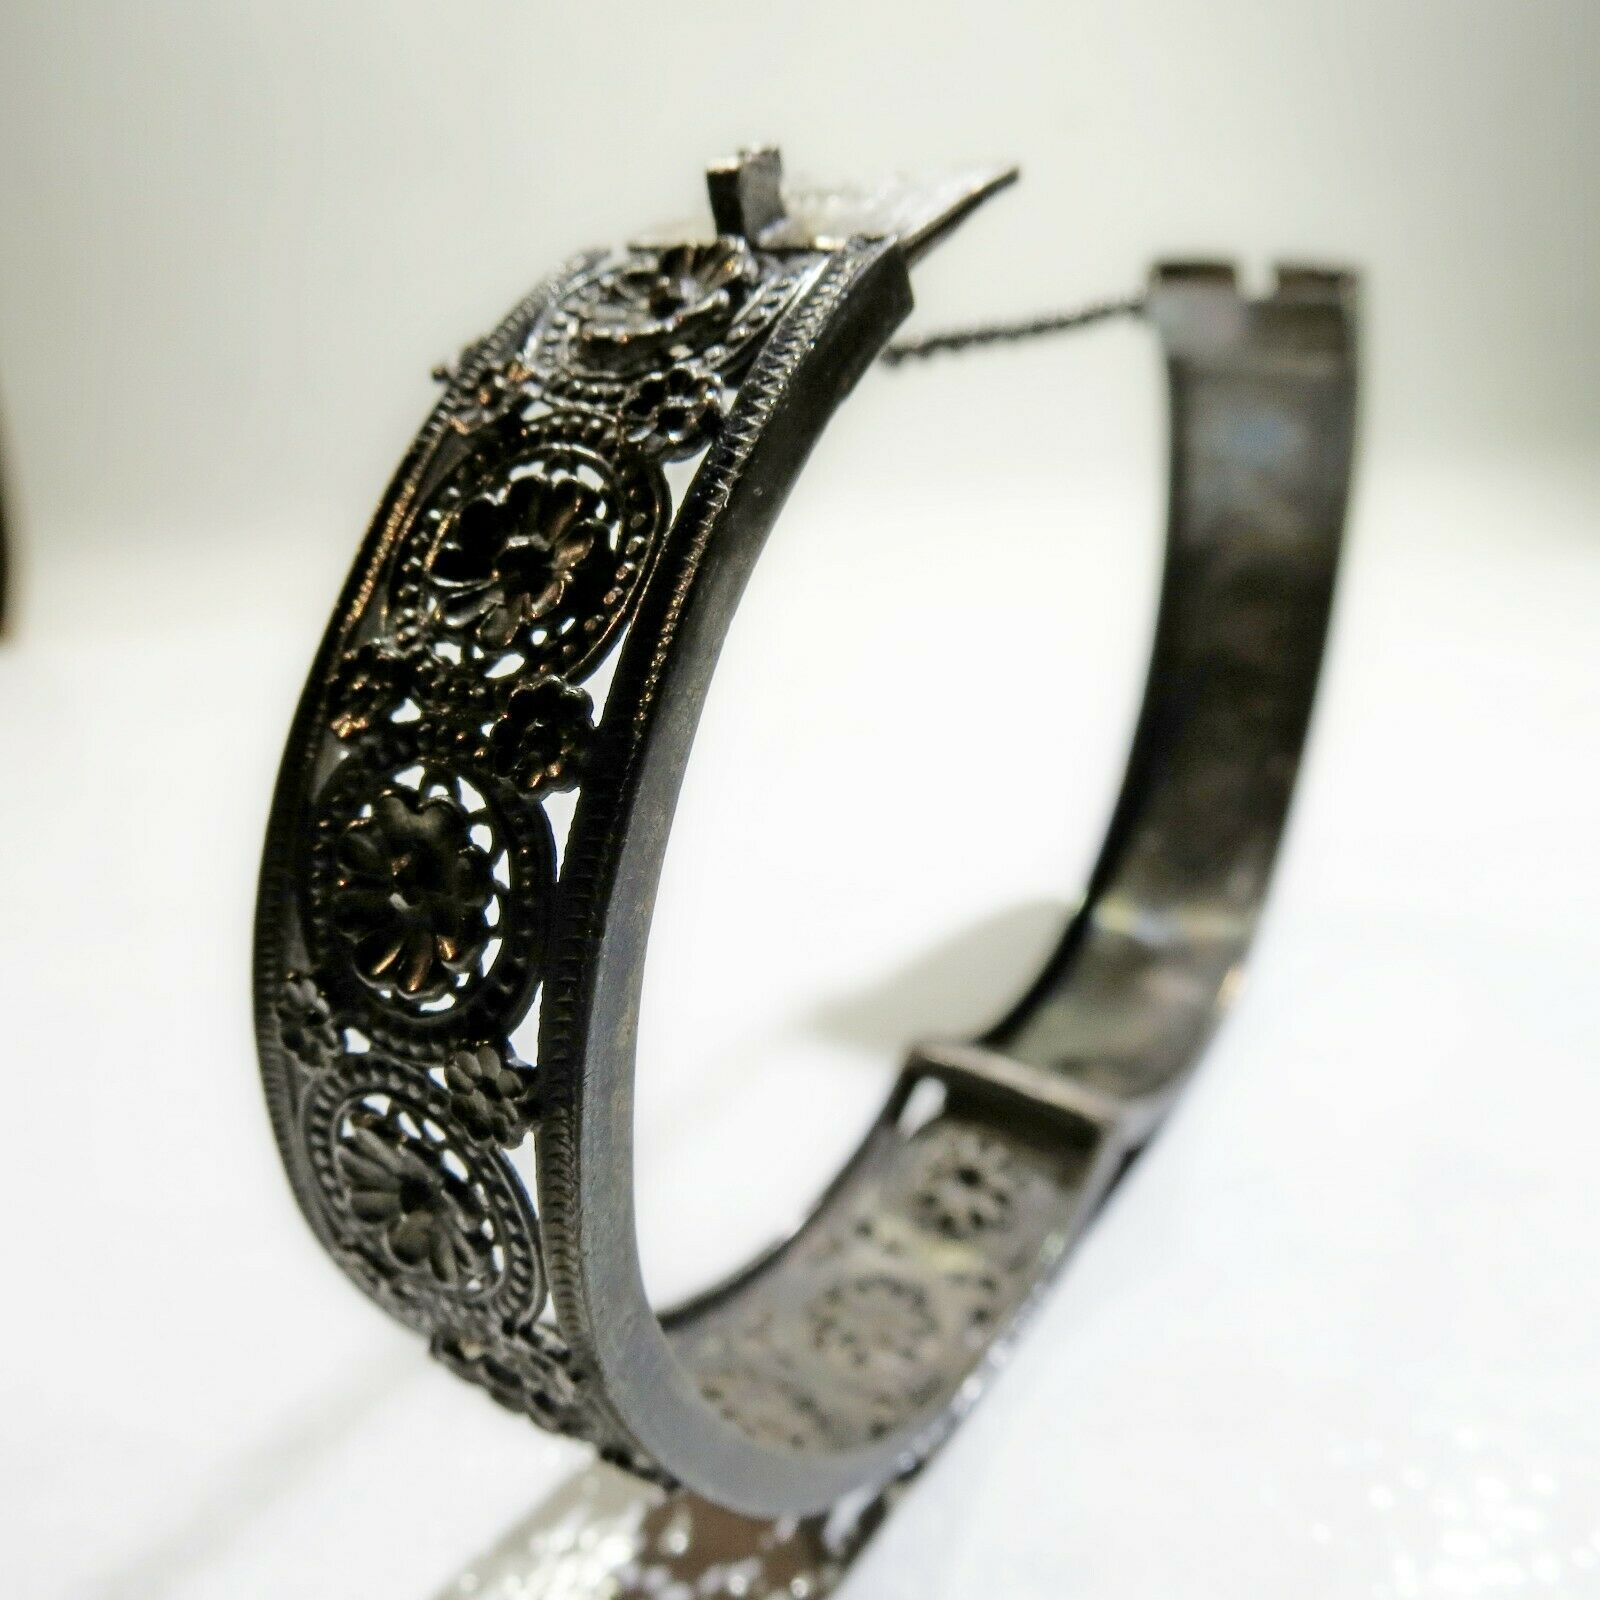 Antique Victorian Depose' Sterling Silver Aesthetic floral Cuff Bracelet 900